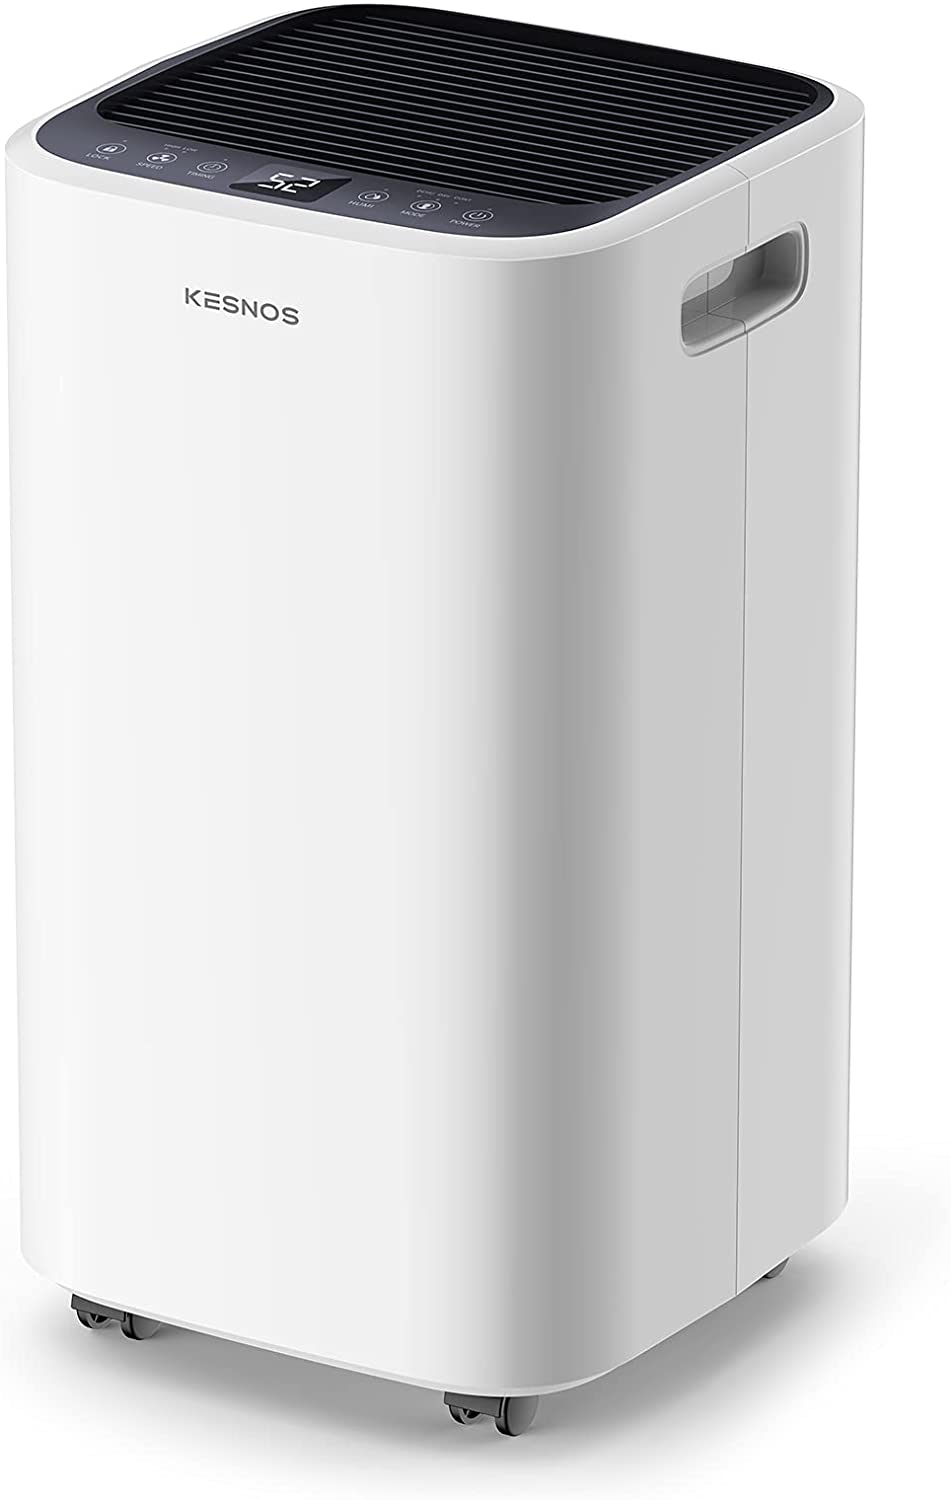 Kesnos Factory outlet 2000 Sq. Ft Dehumidifiers for Basements and Large w Home Tucson Mall